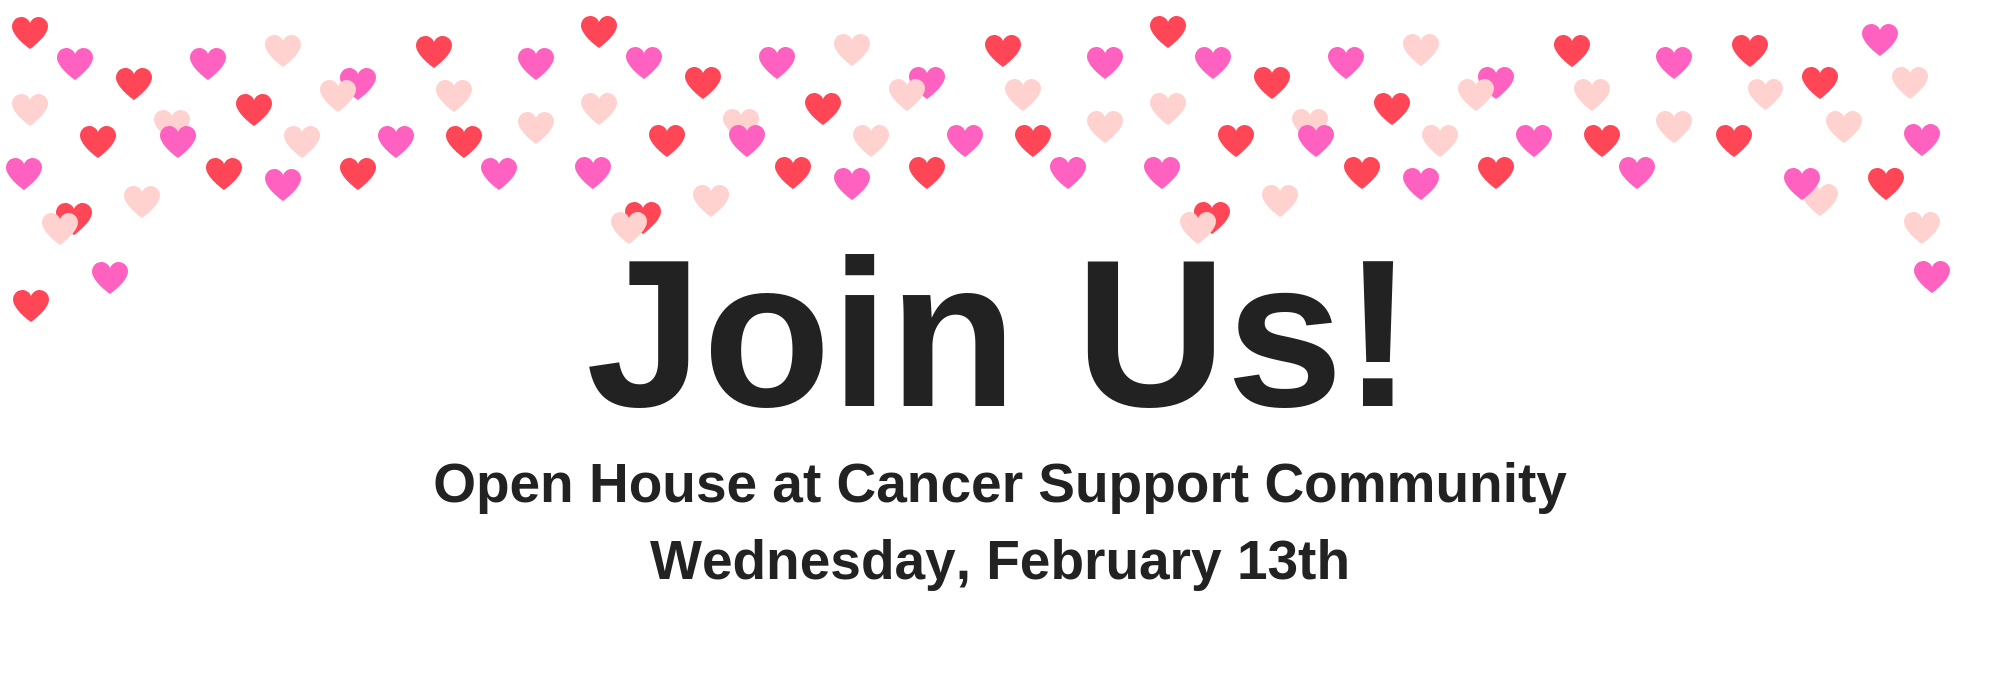 Stop by for cookies and cheer and let us celebrate your support!